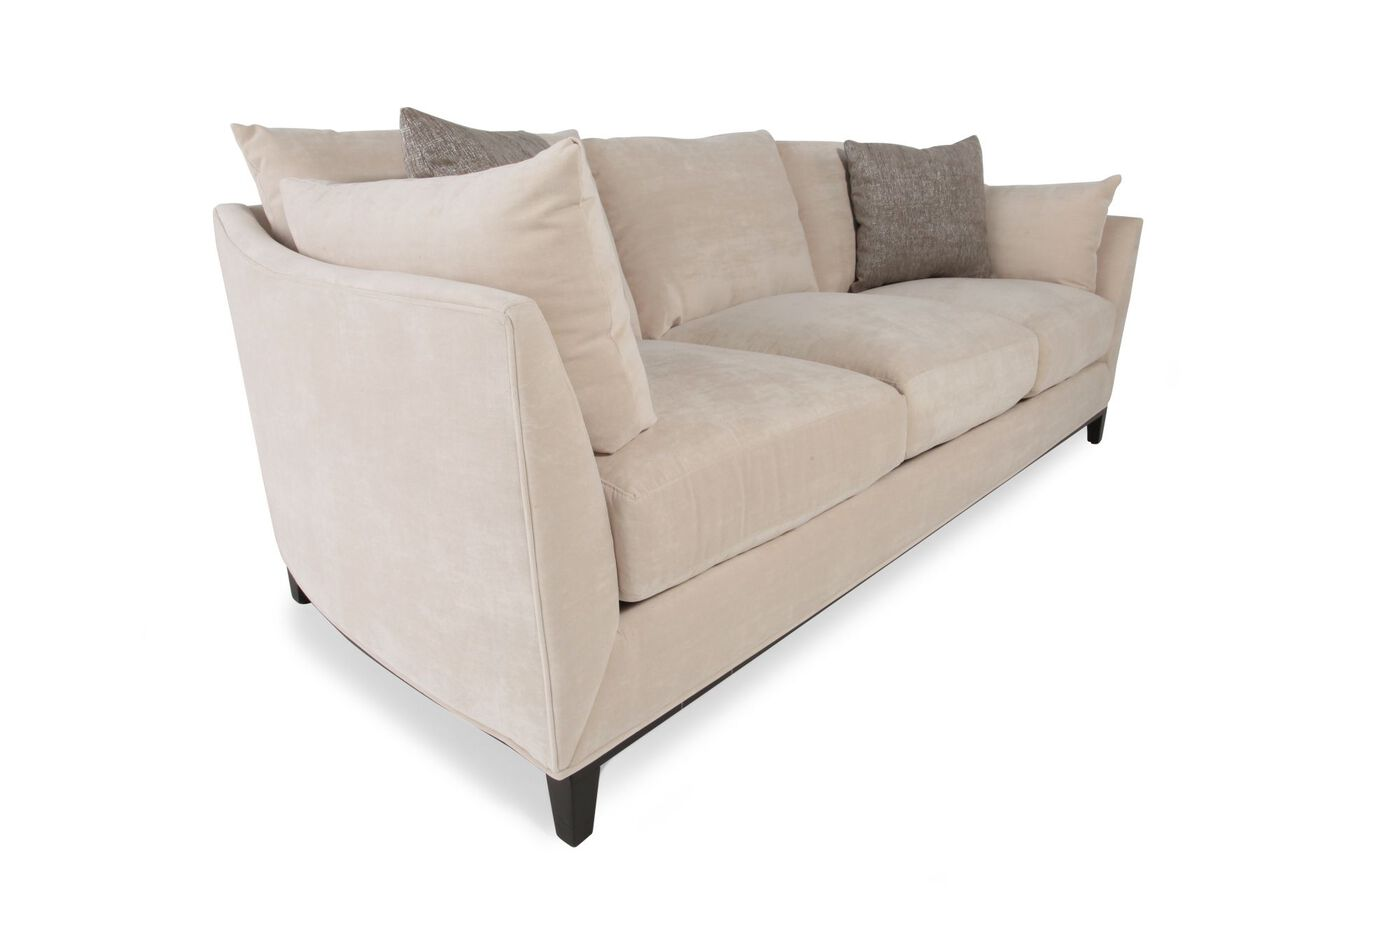 Handcrafted Low Profile 94 Quot Sofa In Caf 233 Au Lait Mathis